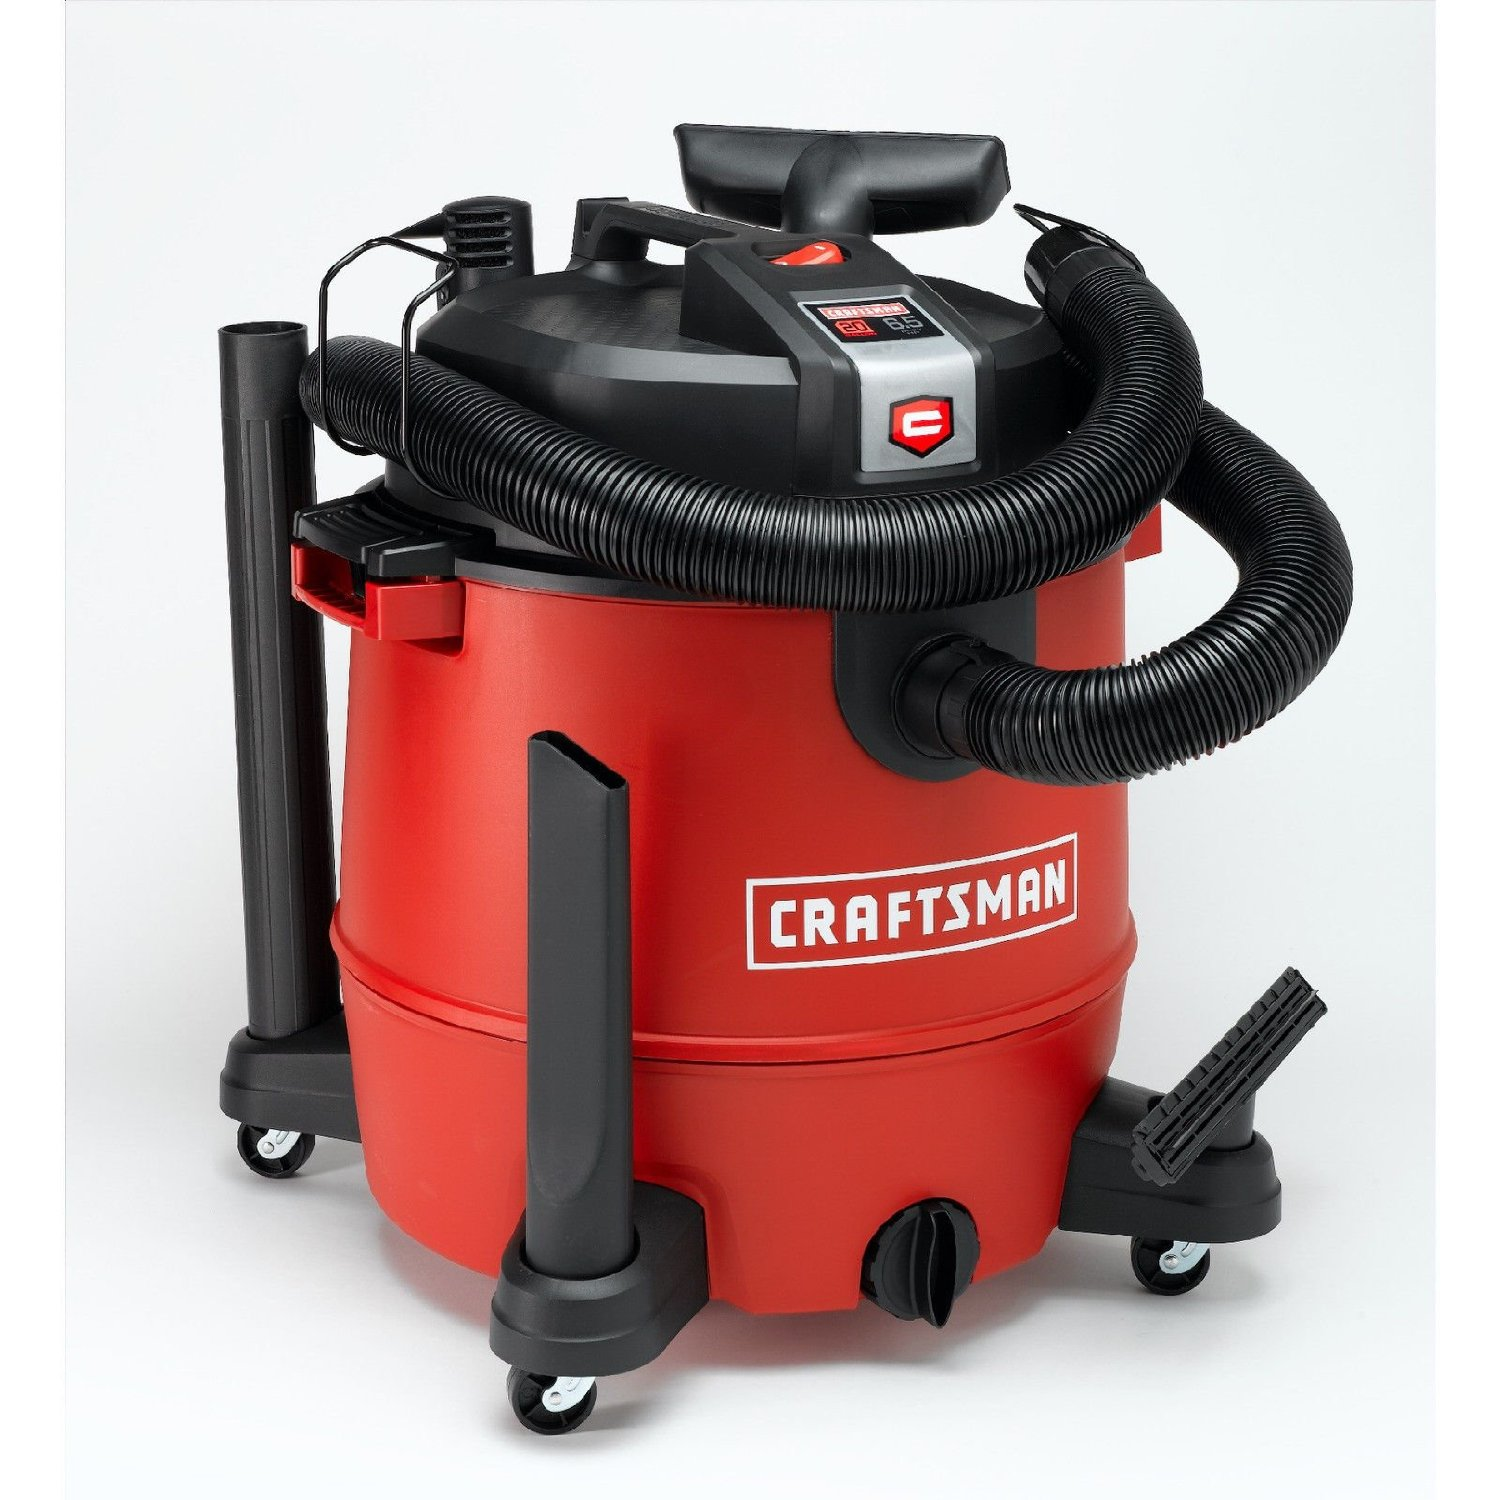 Craftsman XSP 16 Gallon 6.5 Peak HP Wet Dry Shop Vac